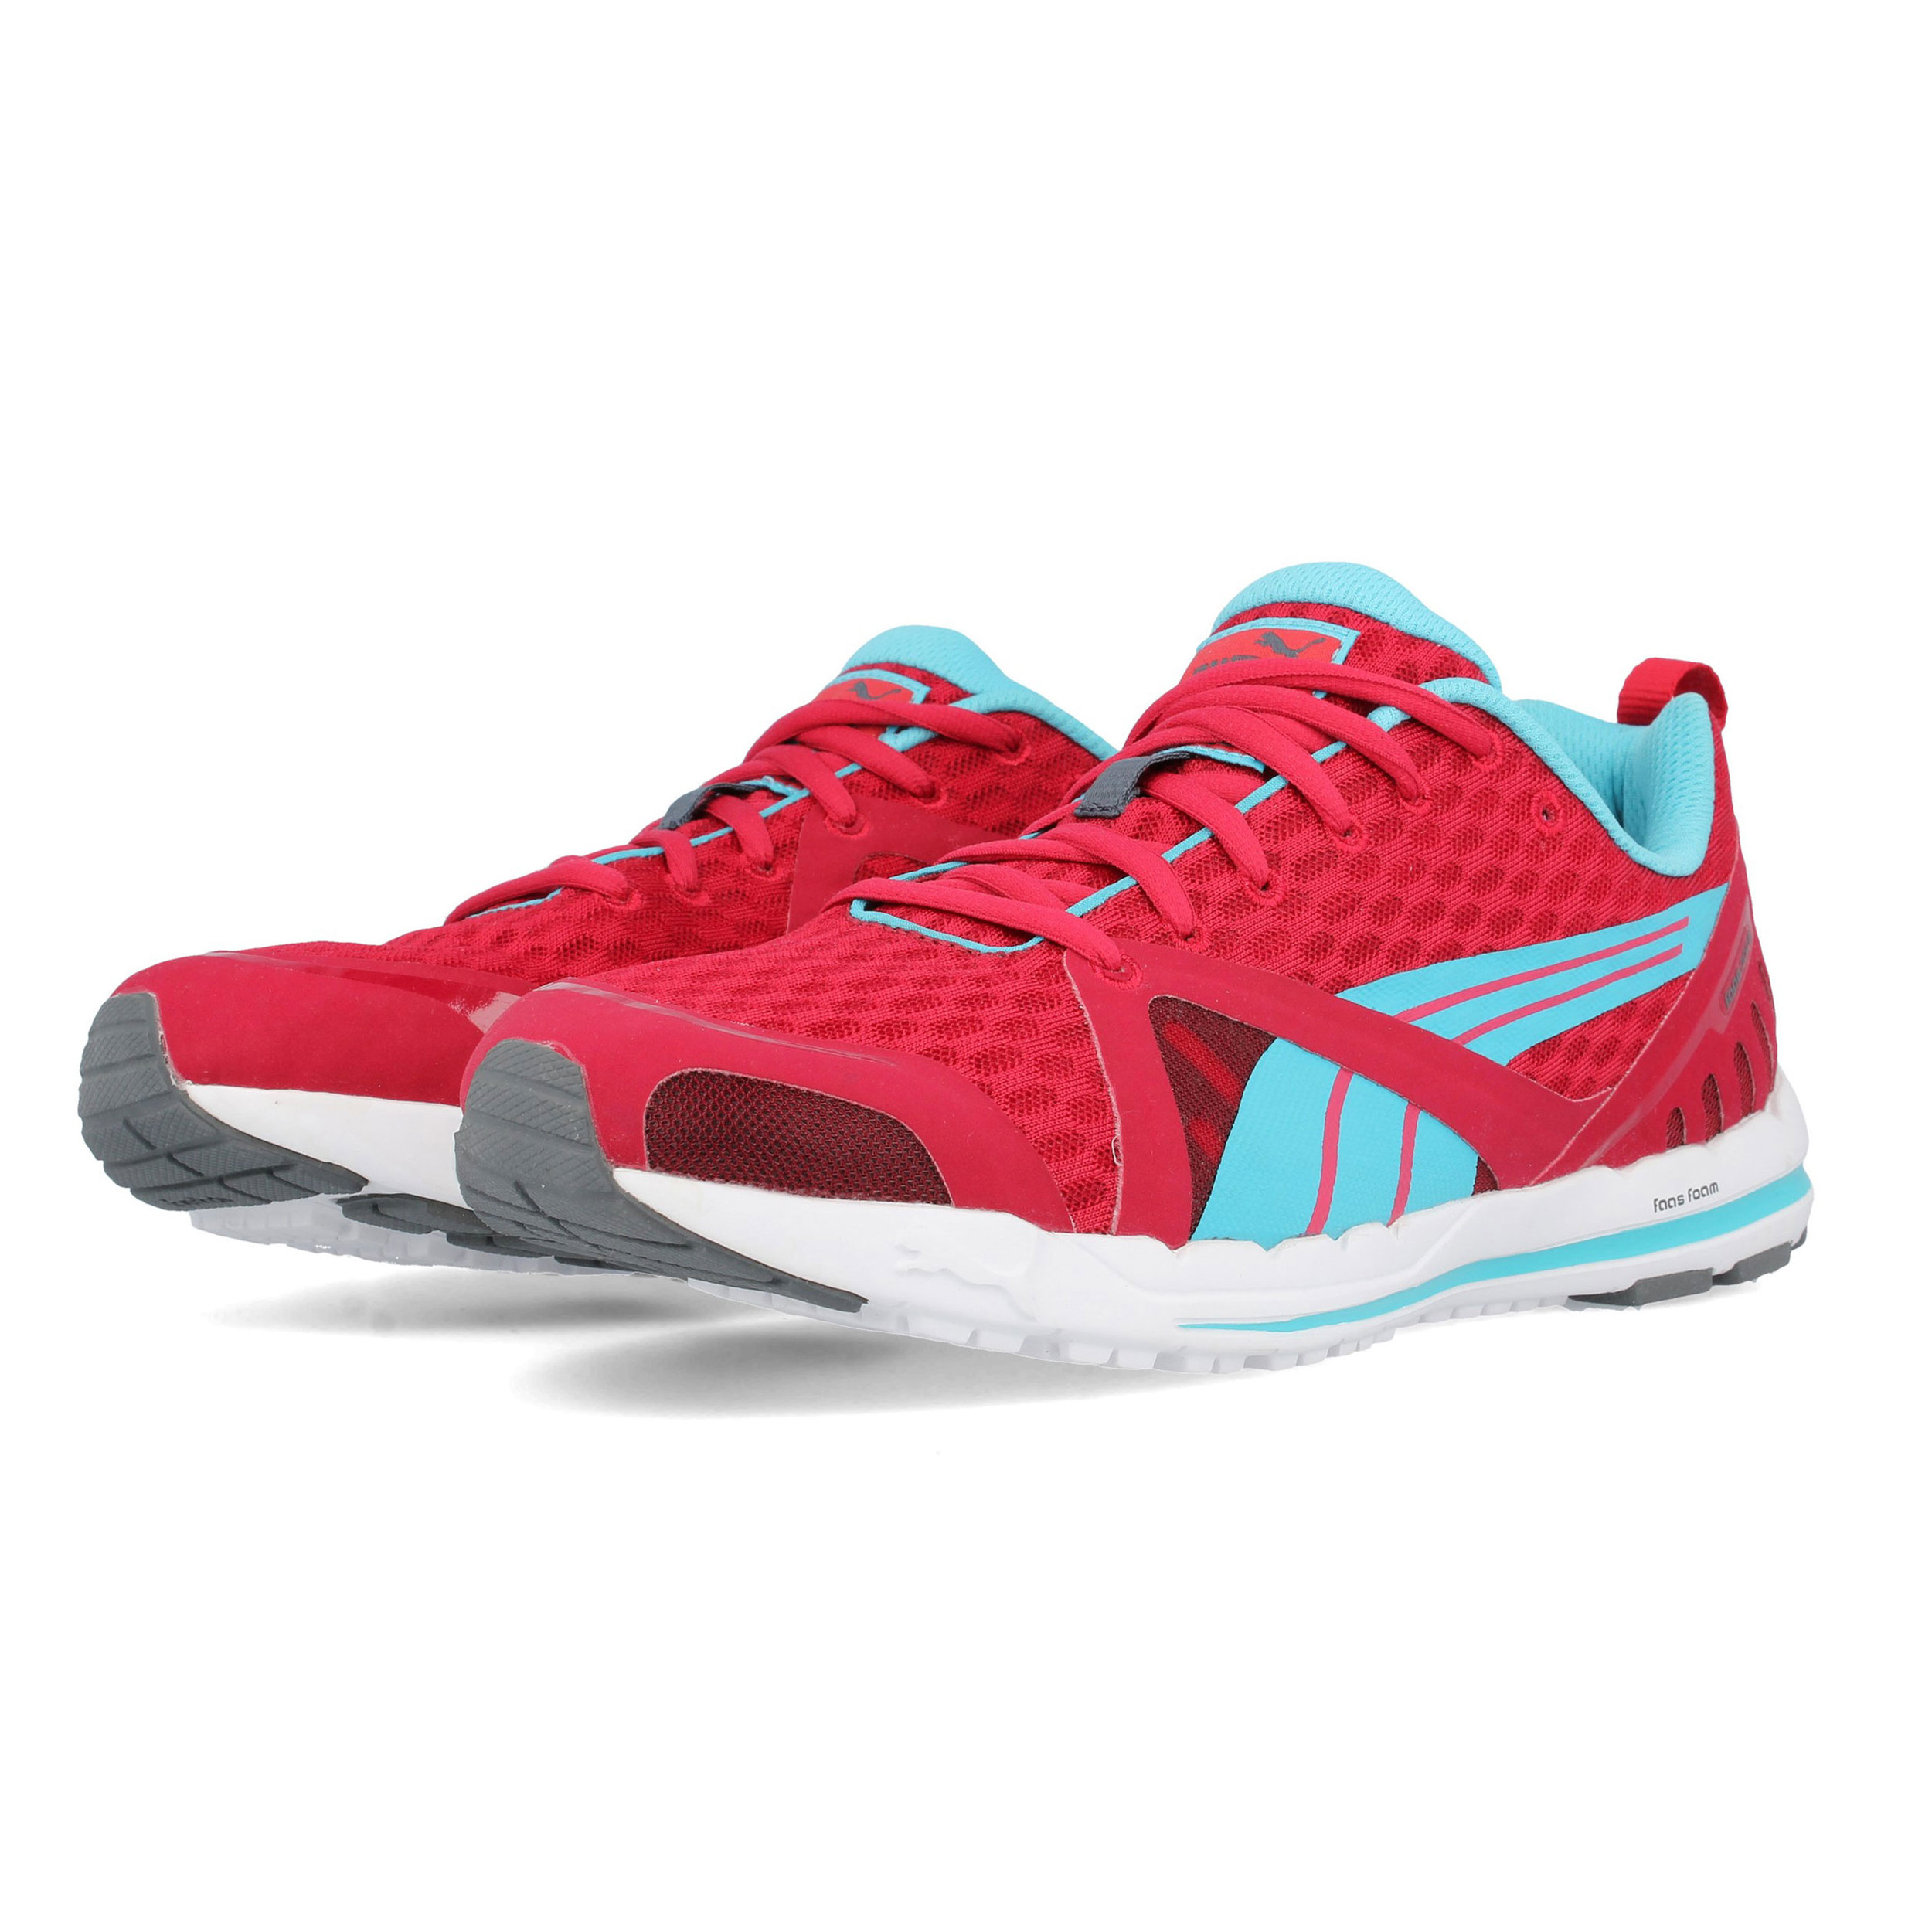 85ff95a6a1d34a Puma Mens Faas 300 S Running Shoes Trainers Sneakers Red Sports Breathable